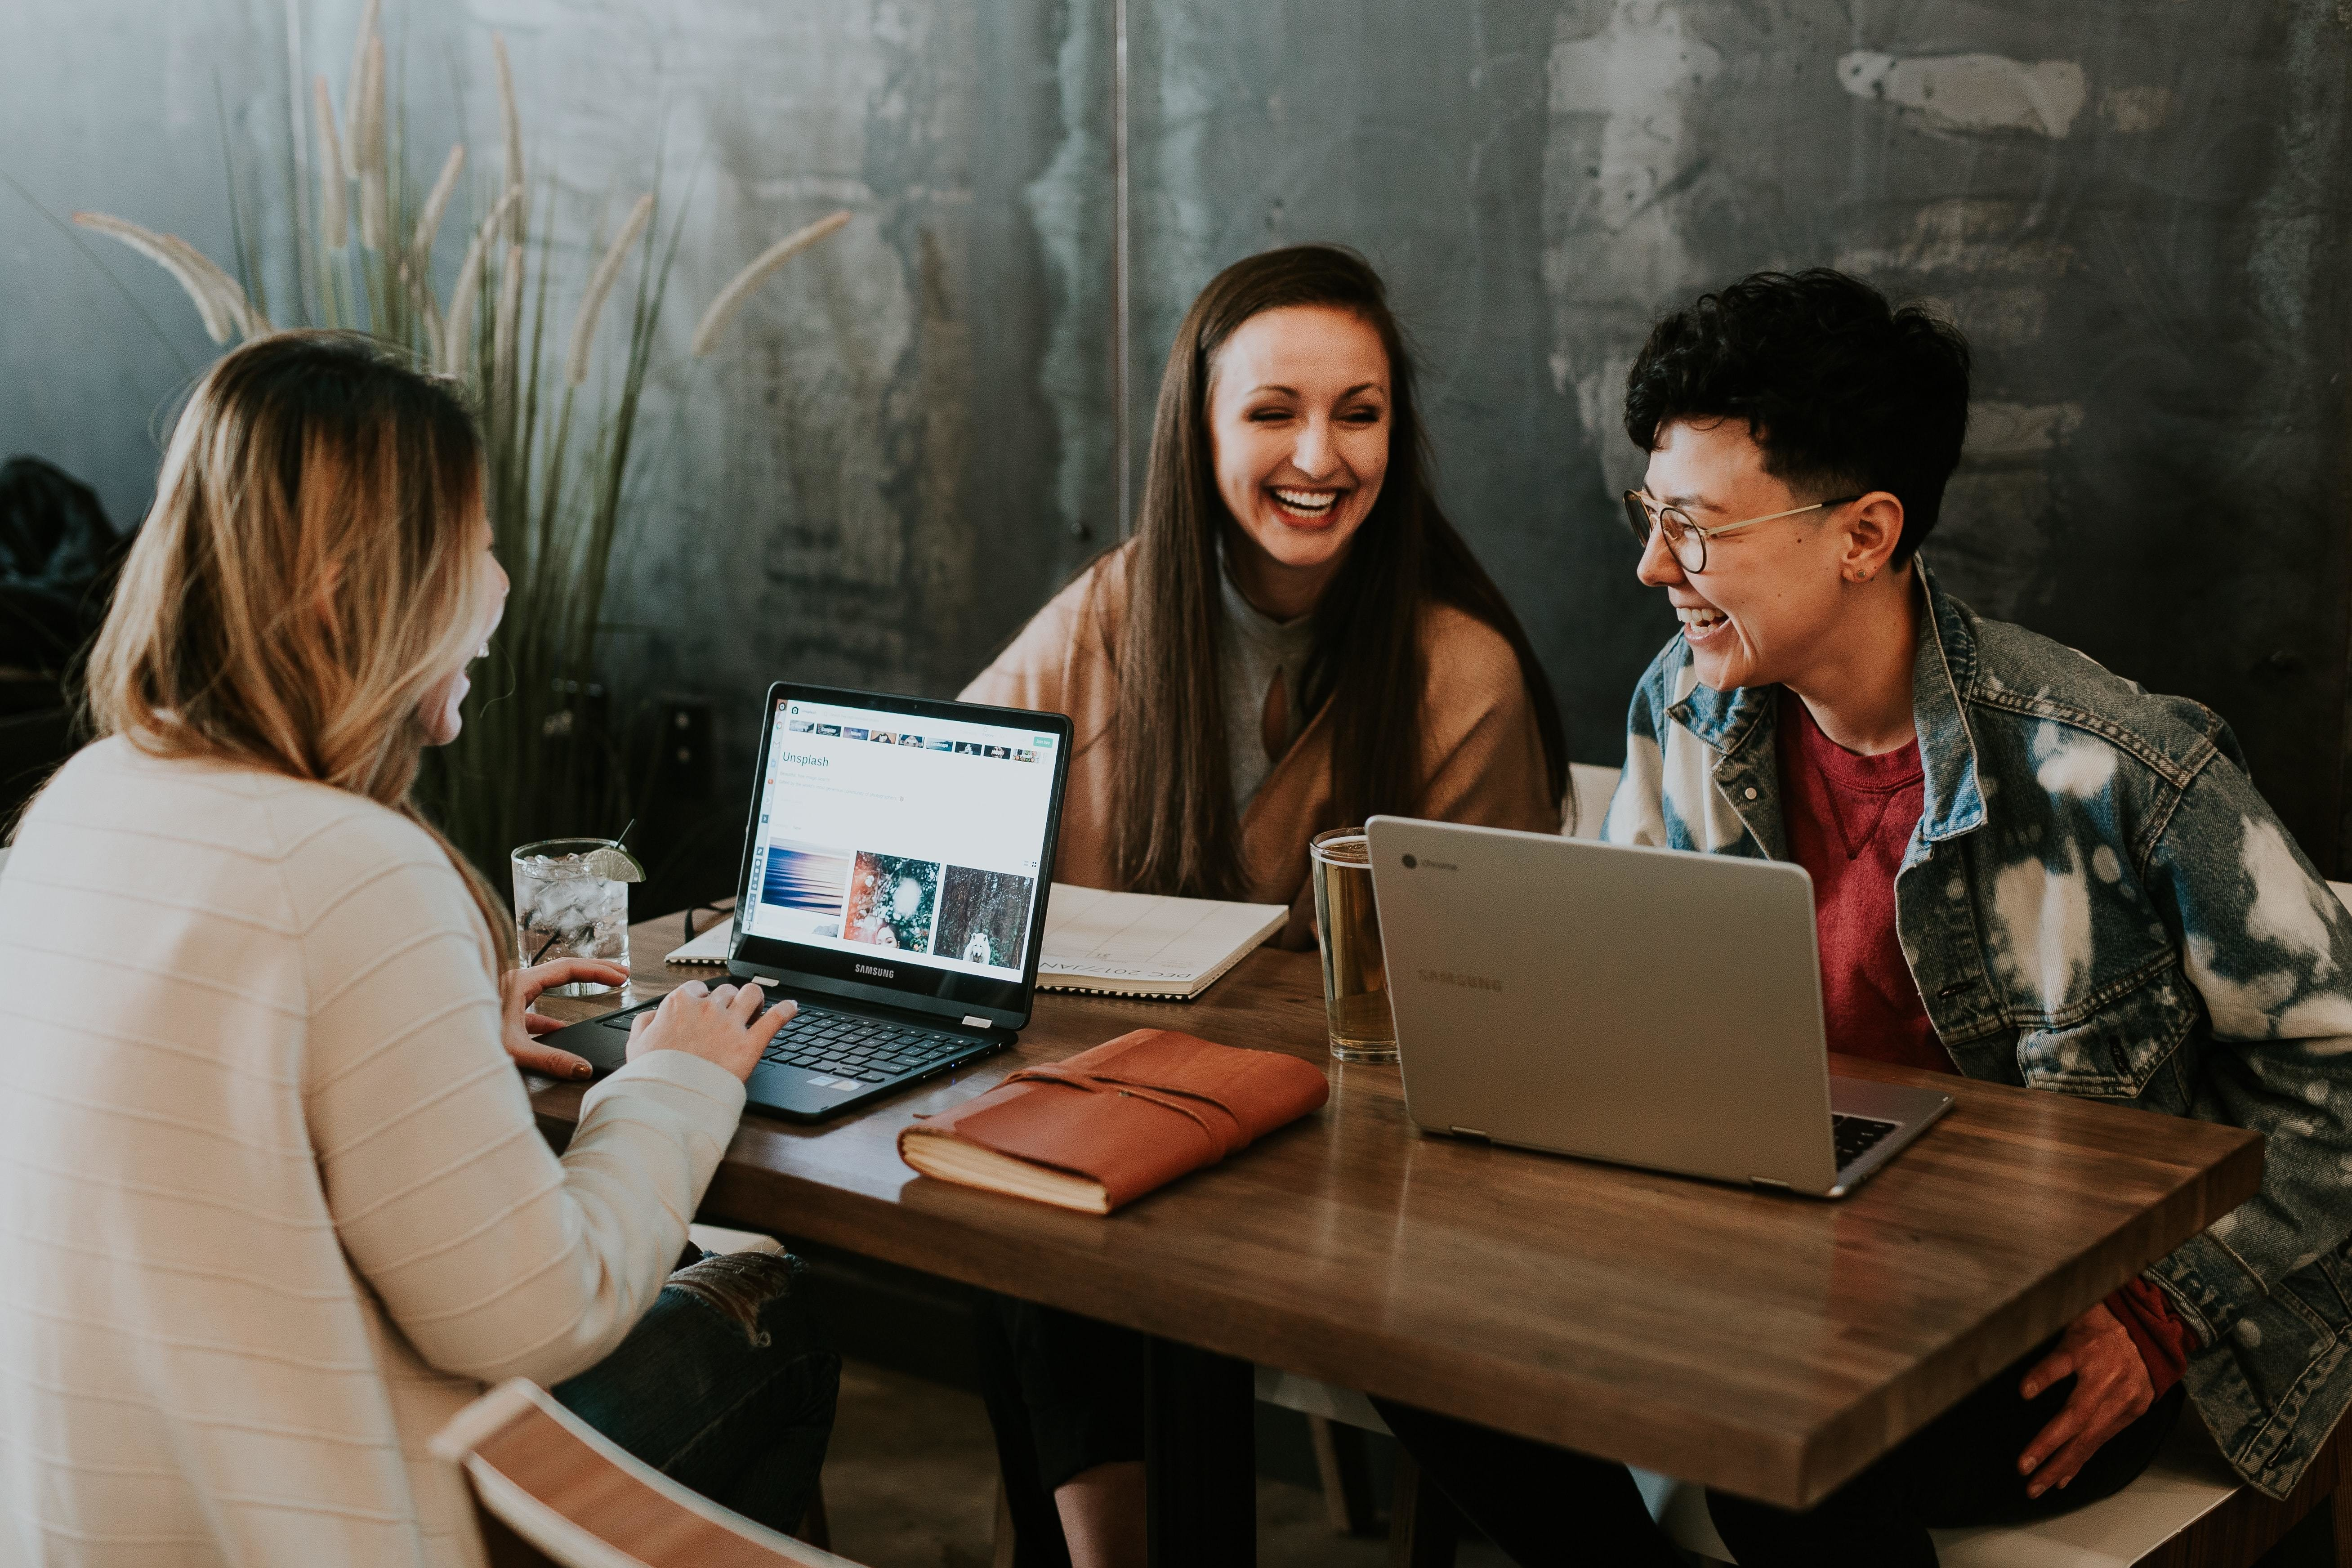 employee well-being, shown here through these employees smiling in their workplace, must be prioritized. MIT and Harvard experts have developed a new toolkit to help create a healthy work environment